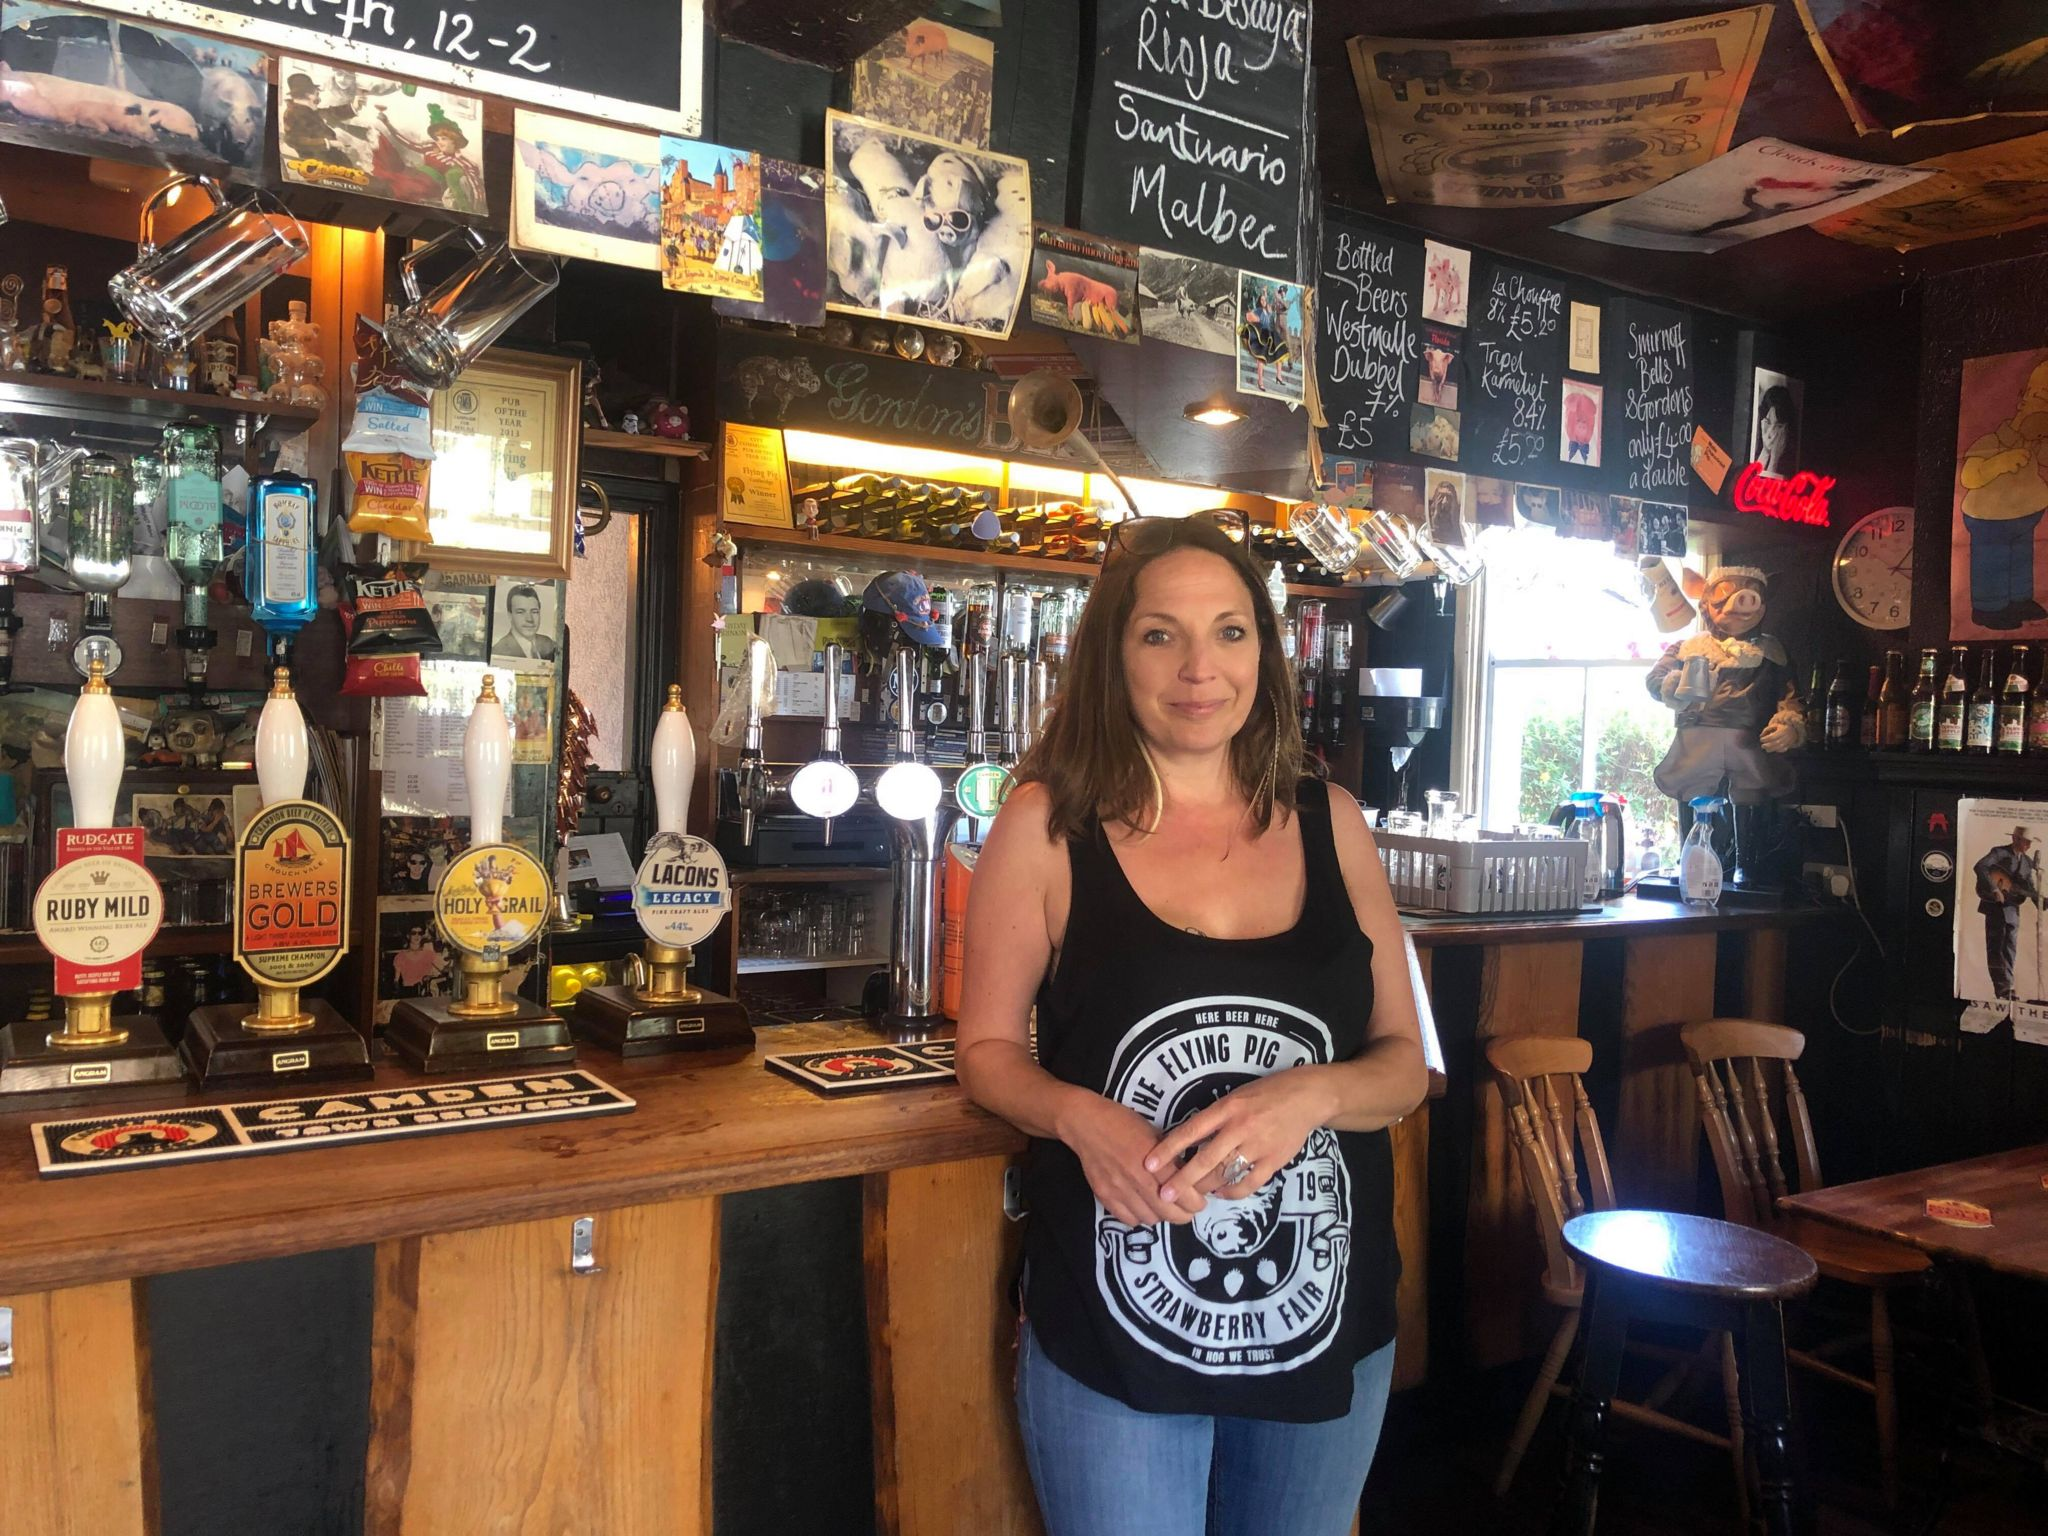 Justine Hatfield inside the Flying Pig which she runs with her husband, Matt.